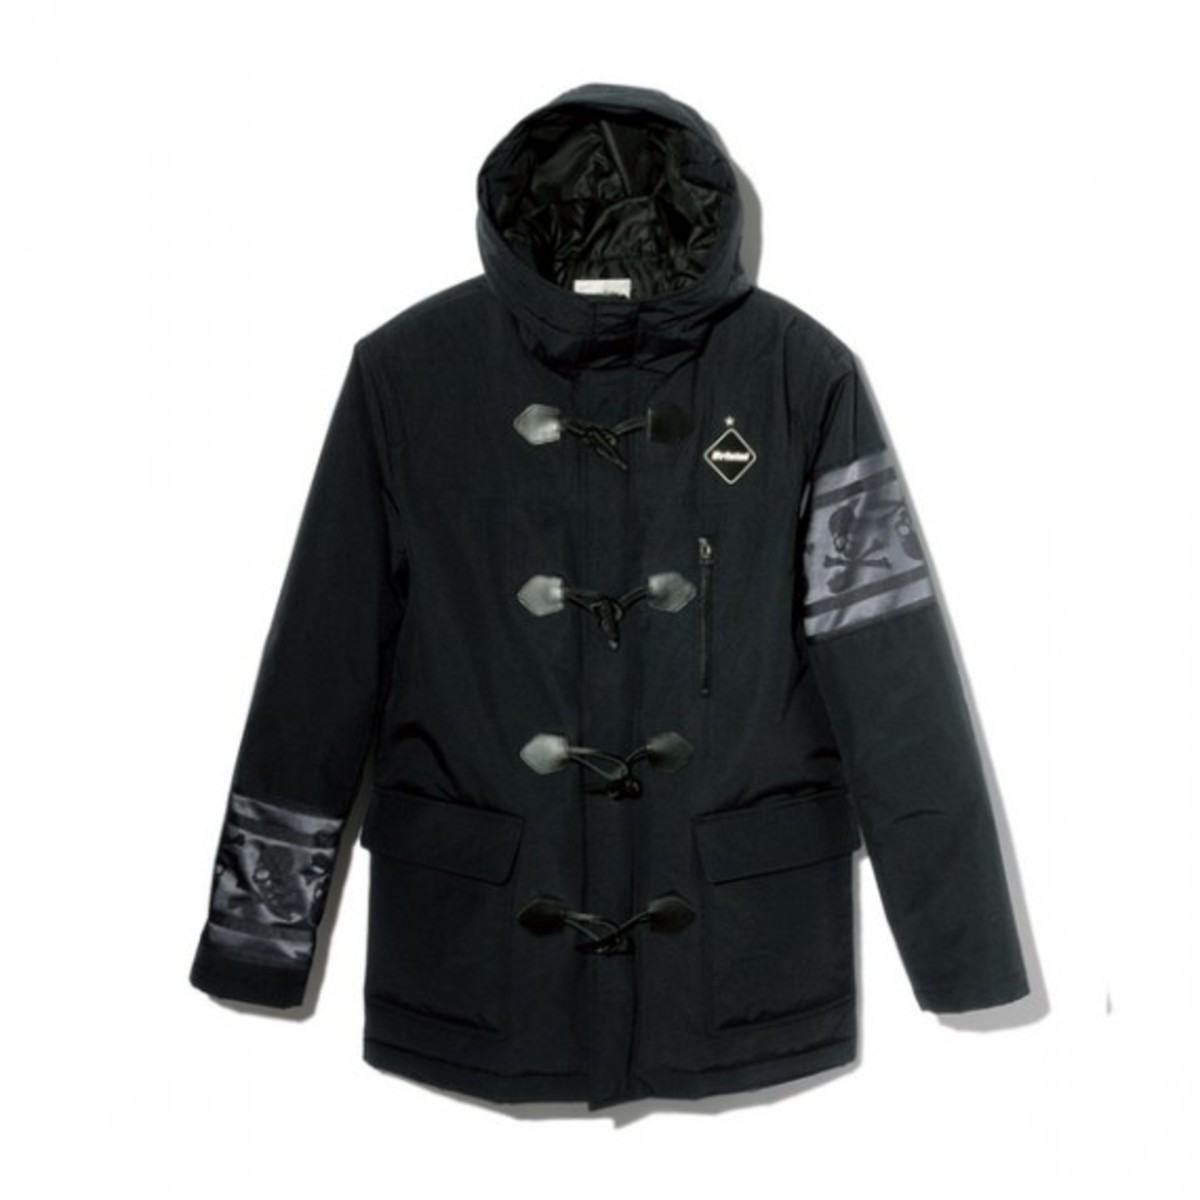 f-c-r-b-x-mastermind-japan-fallwinter-2012-outerwear-collection-13